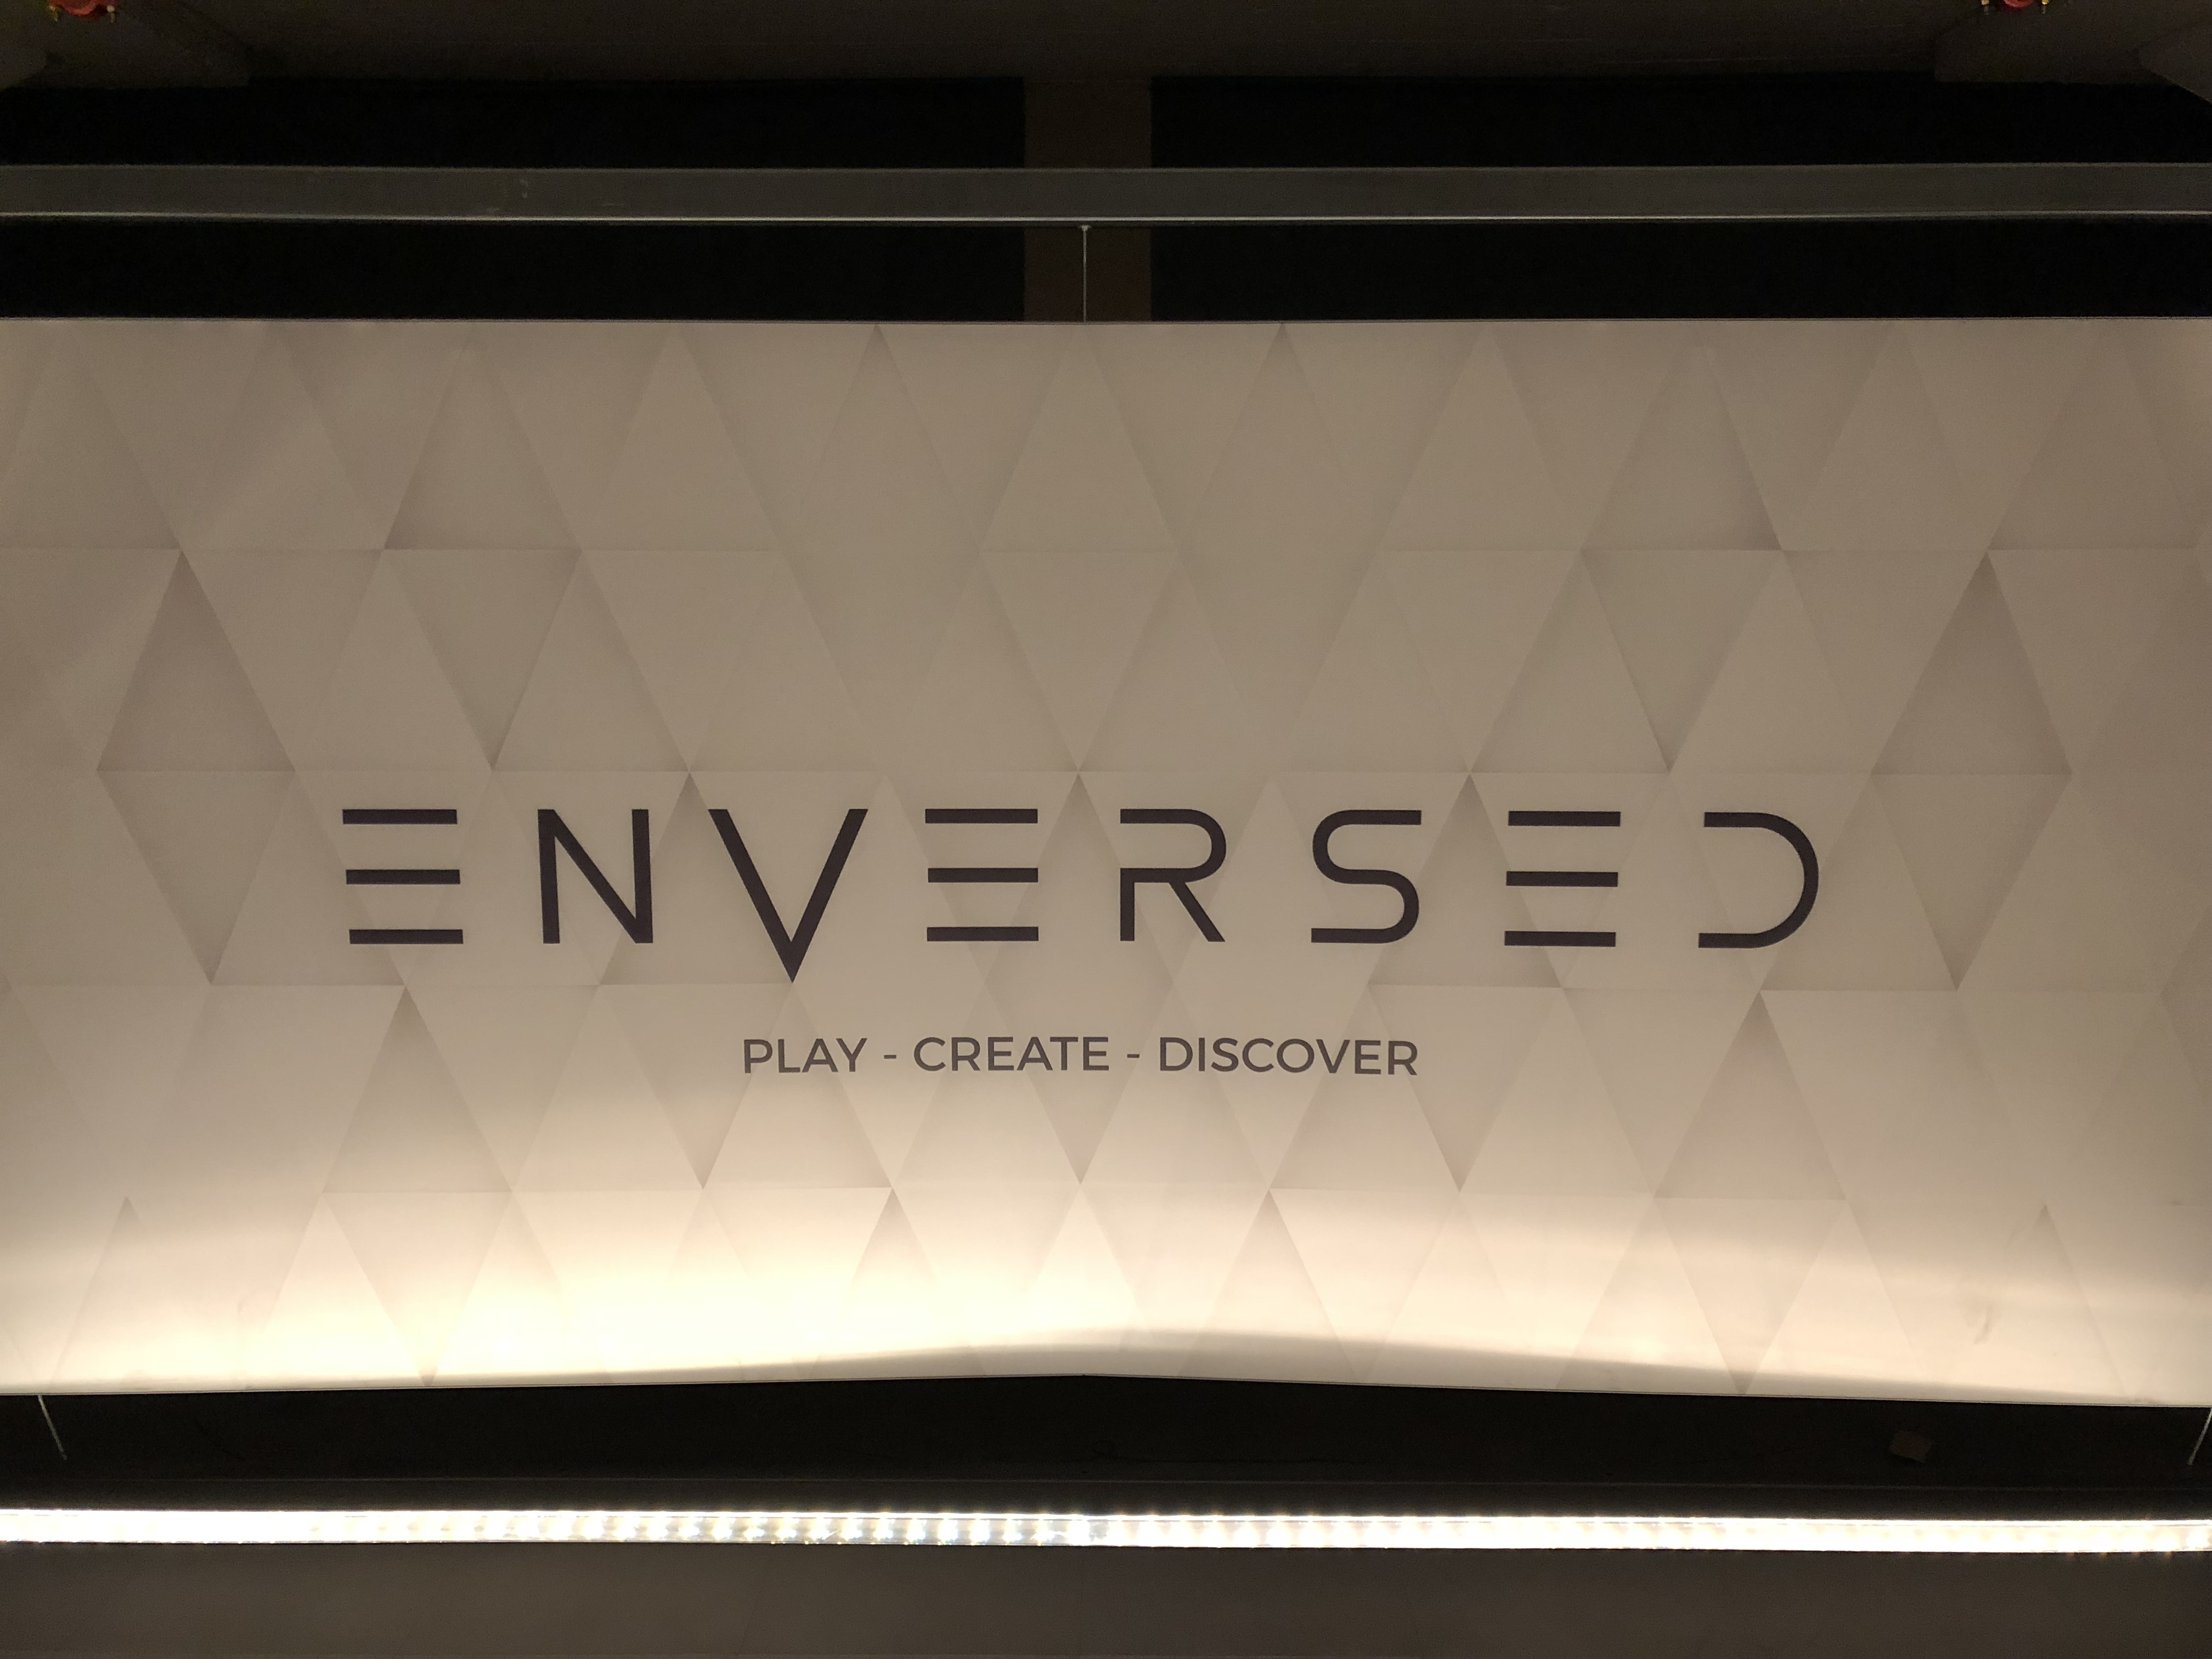 ENVERSED-Eindhoven-VR-Gaming-night-out-drinks